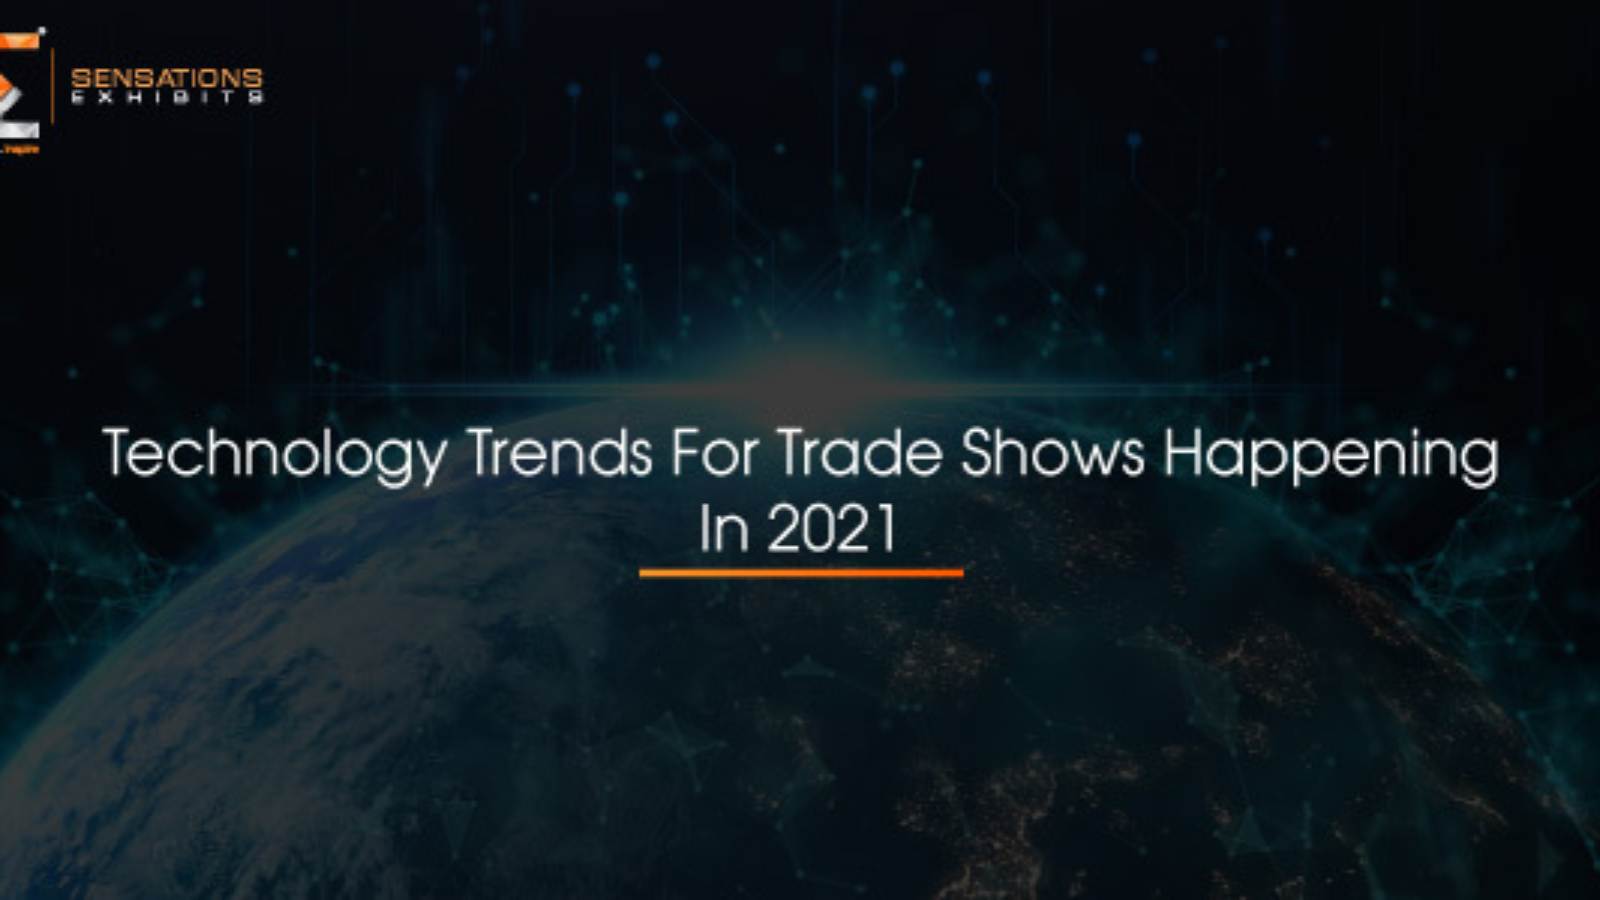 Technology-Trends-For-Trade-Shows-Happening-In-2021